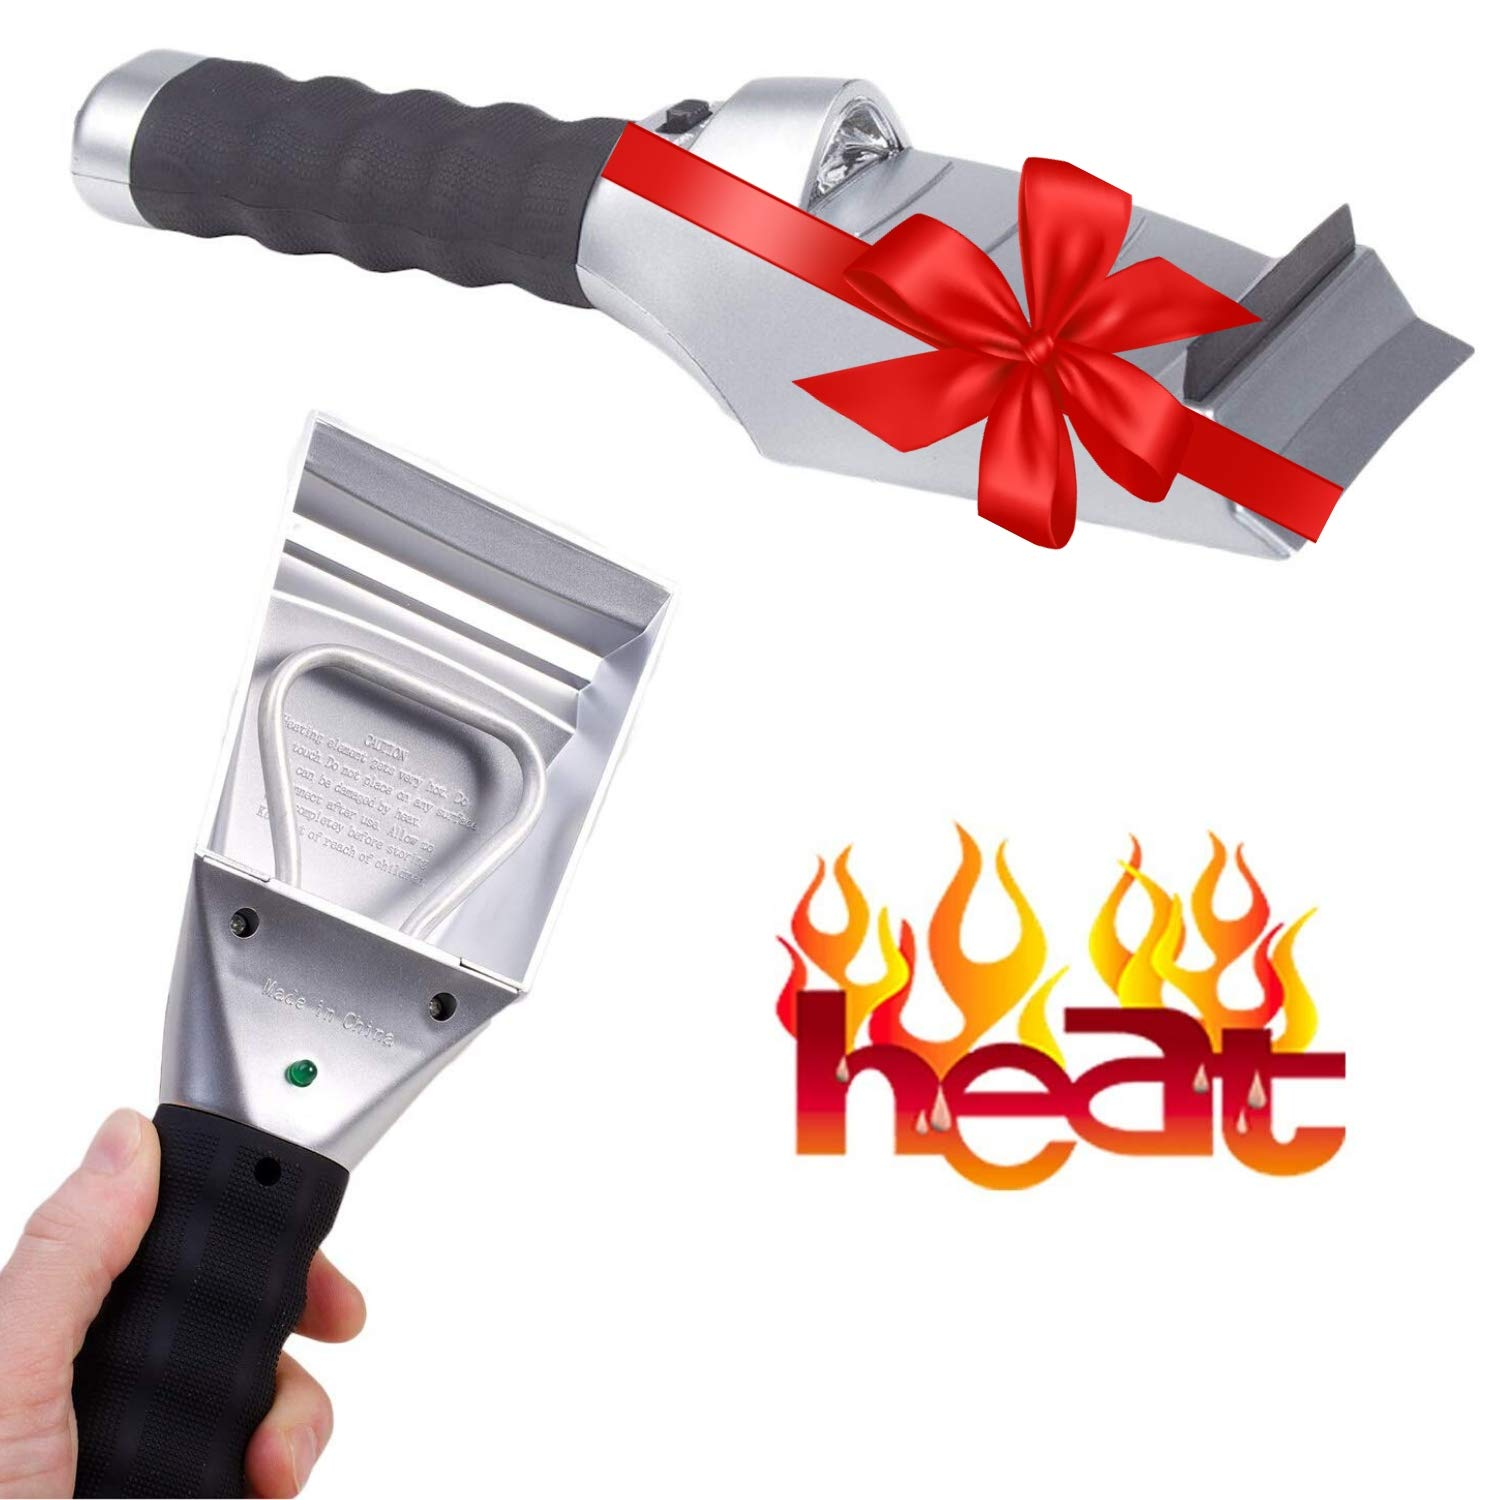 Heated Snow Ice Scraper for Car - Electric Heated Auto Windshield Window Ice Scrapers with Flashlight and Squeegee for Cars, Truck or SUV - Powered 12V Cigarette Socket Save Time Cleaning Ice